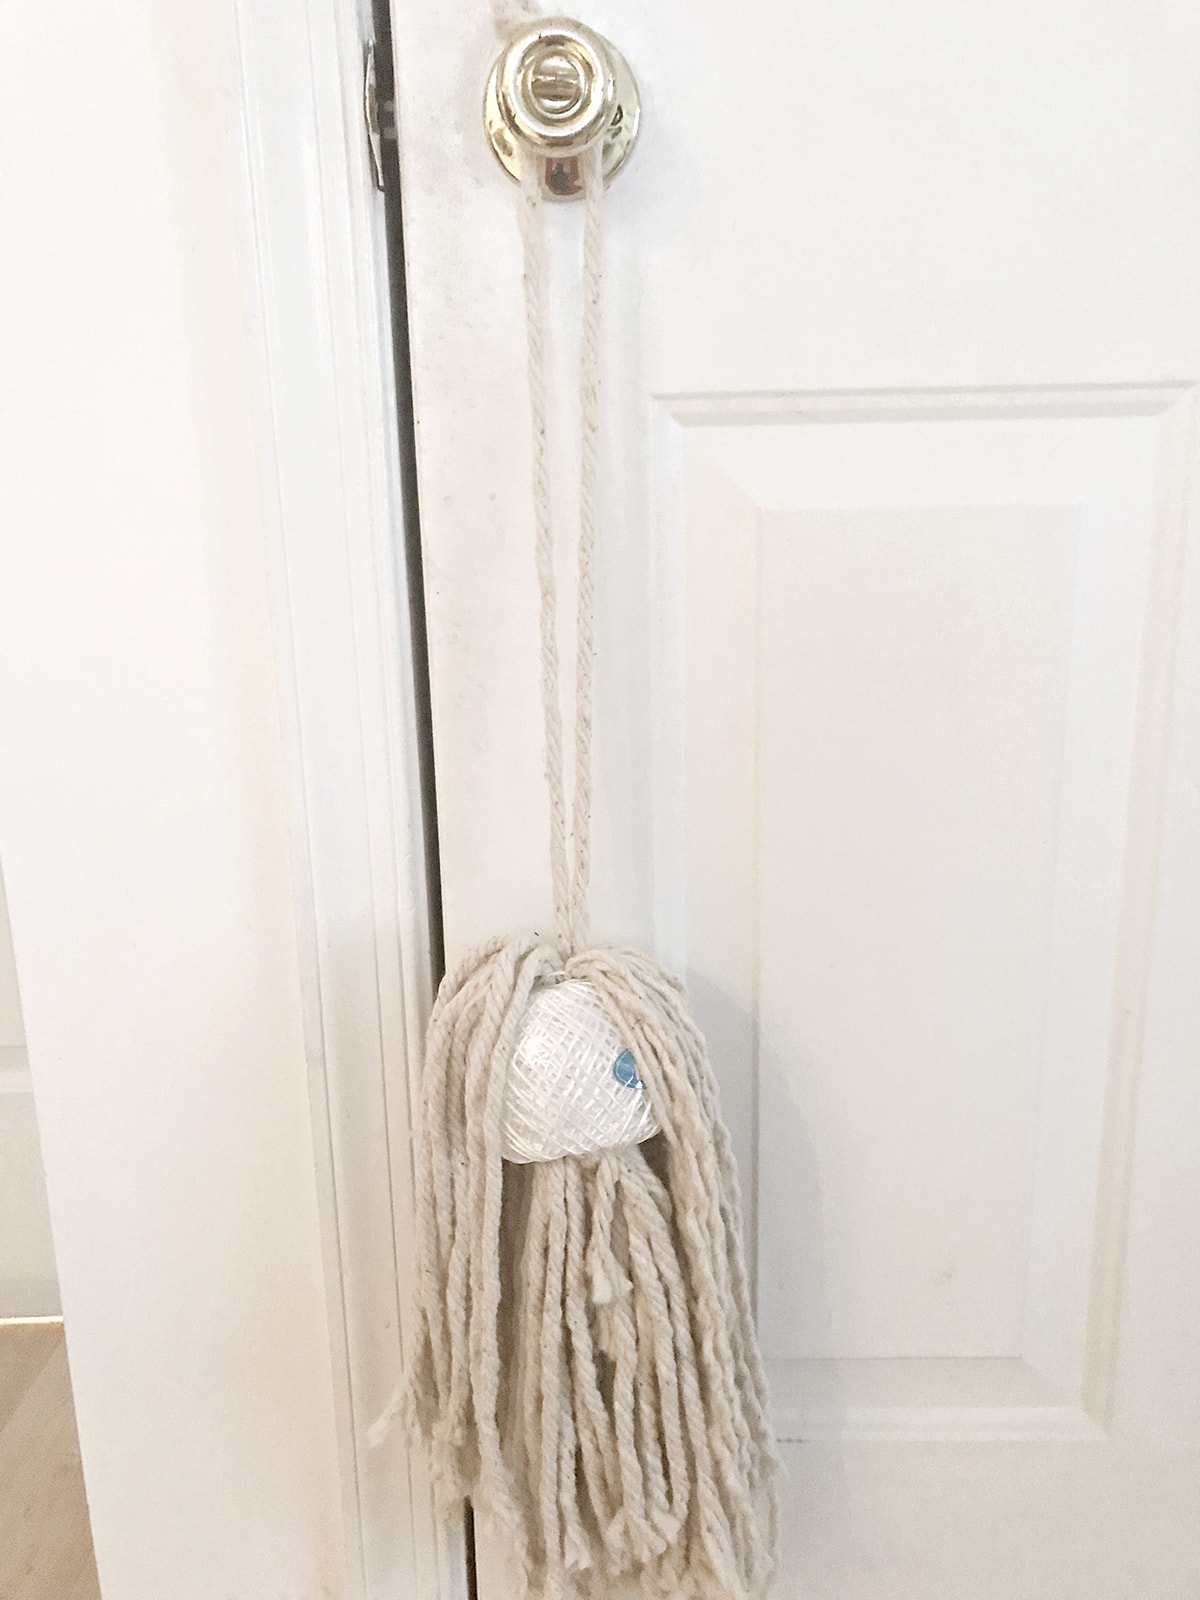 hanging unfinished mop head and twine